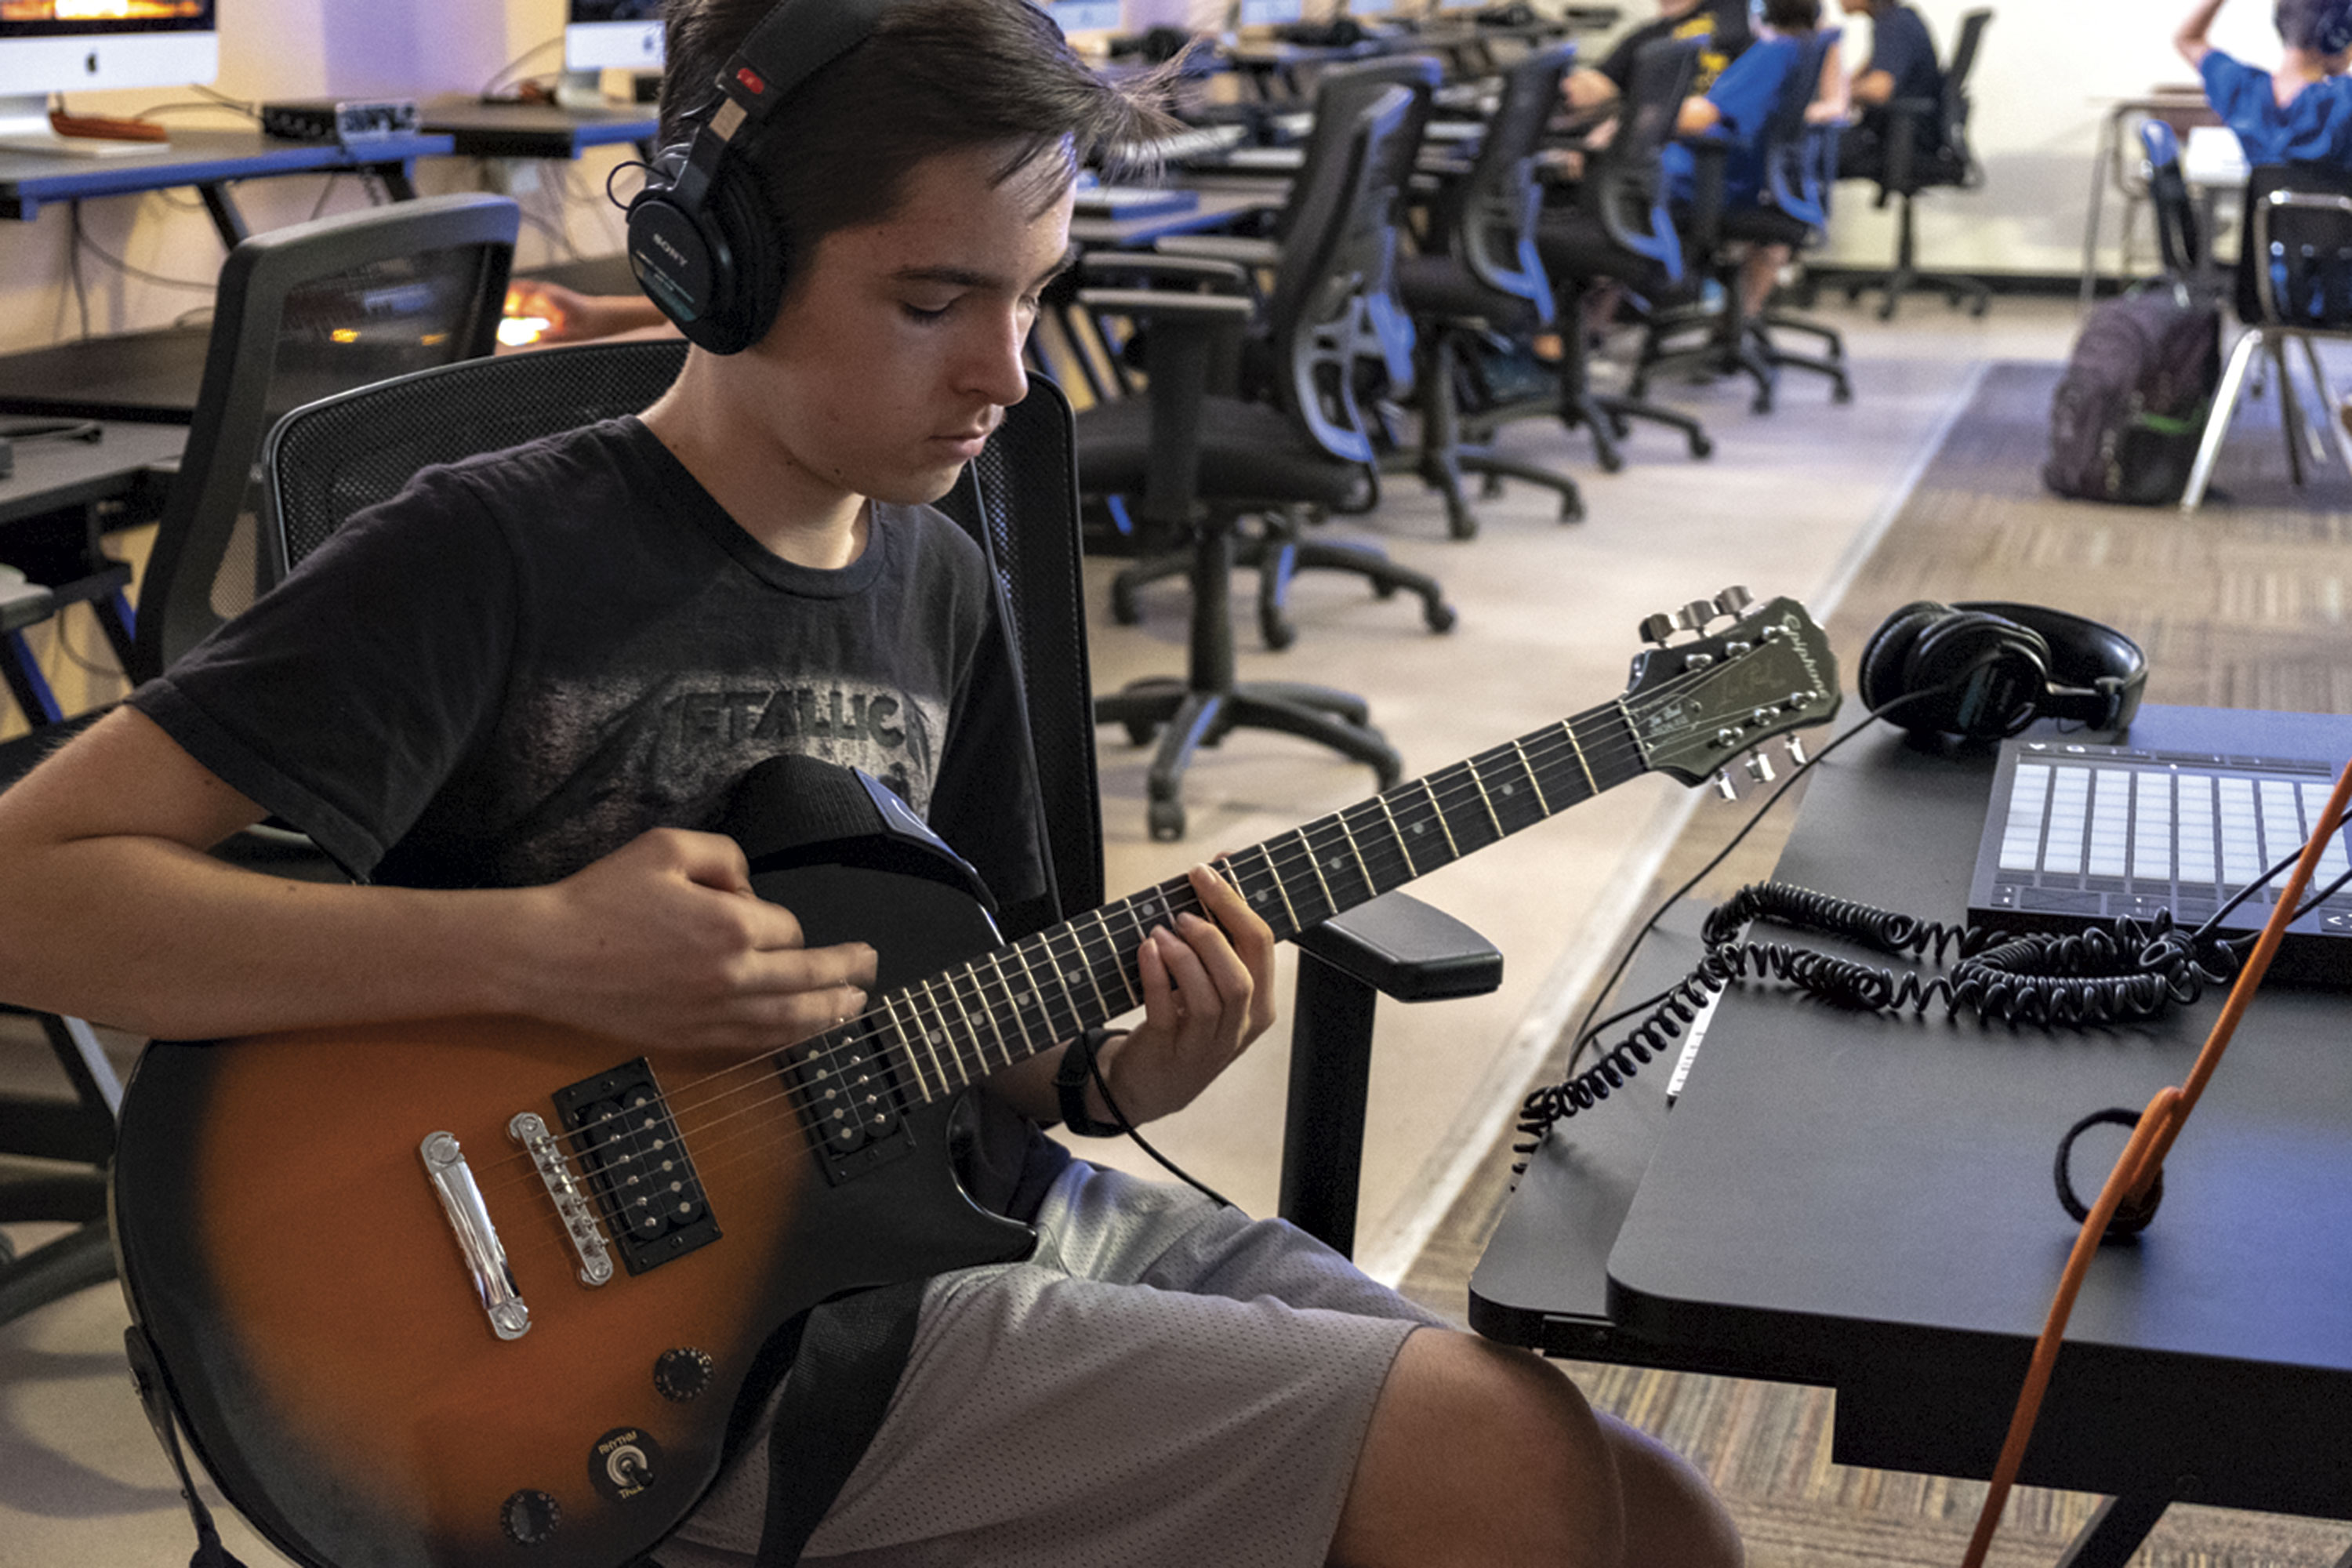 student Maxx Wallace jams on the system.